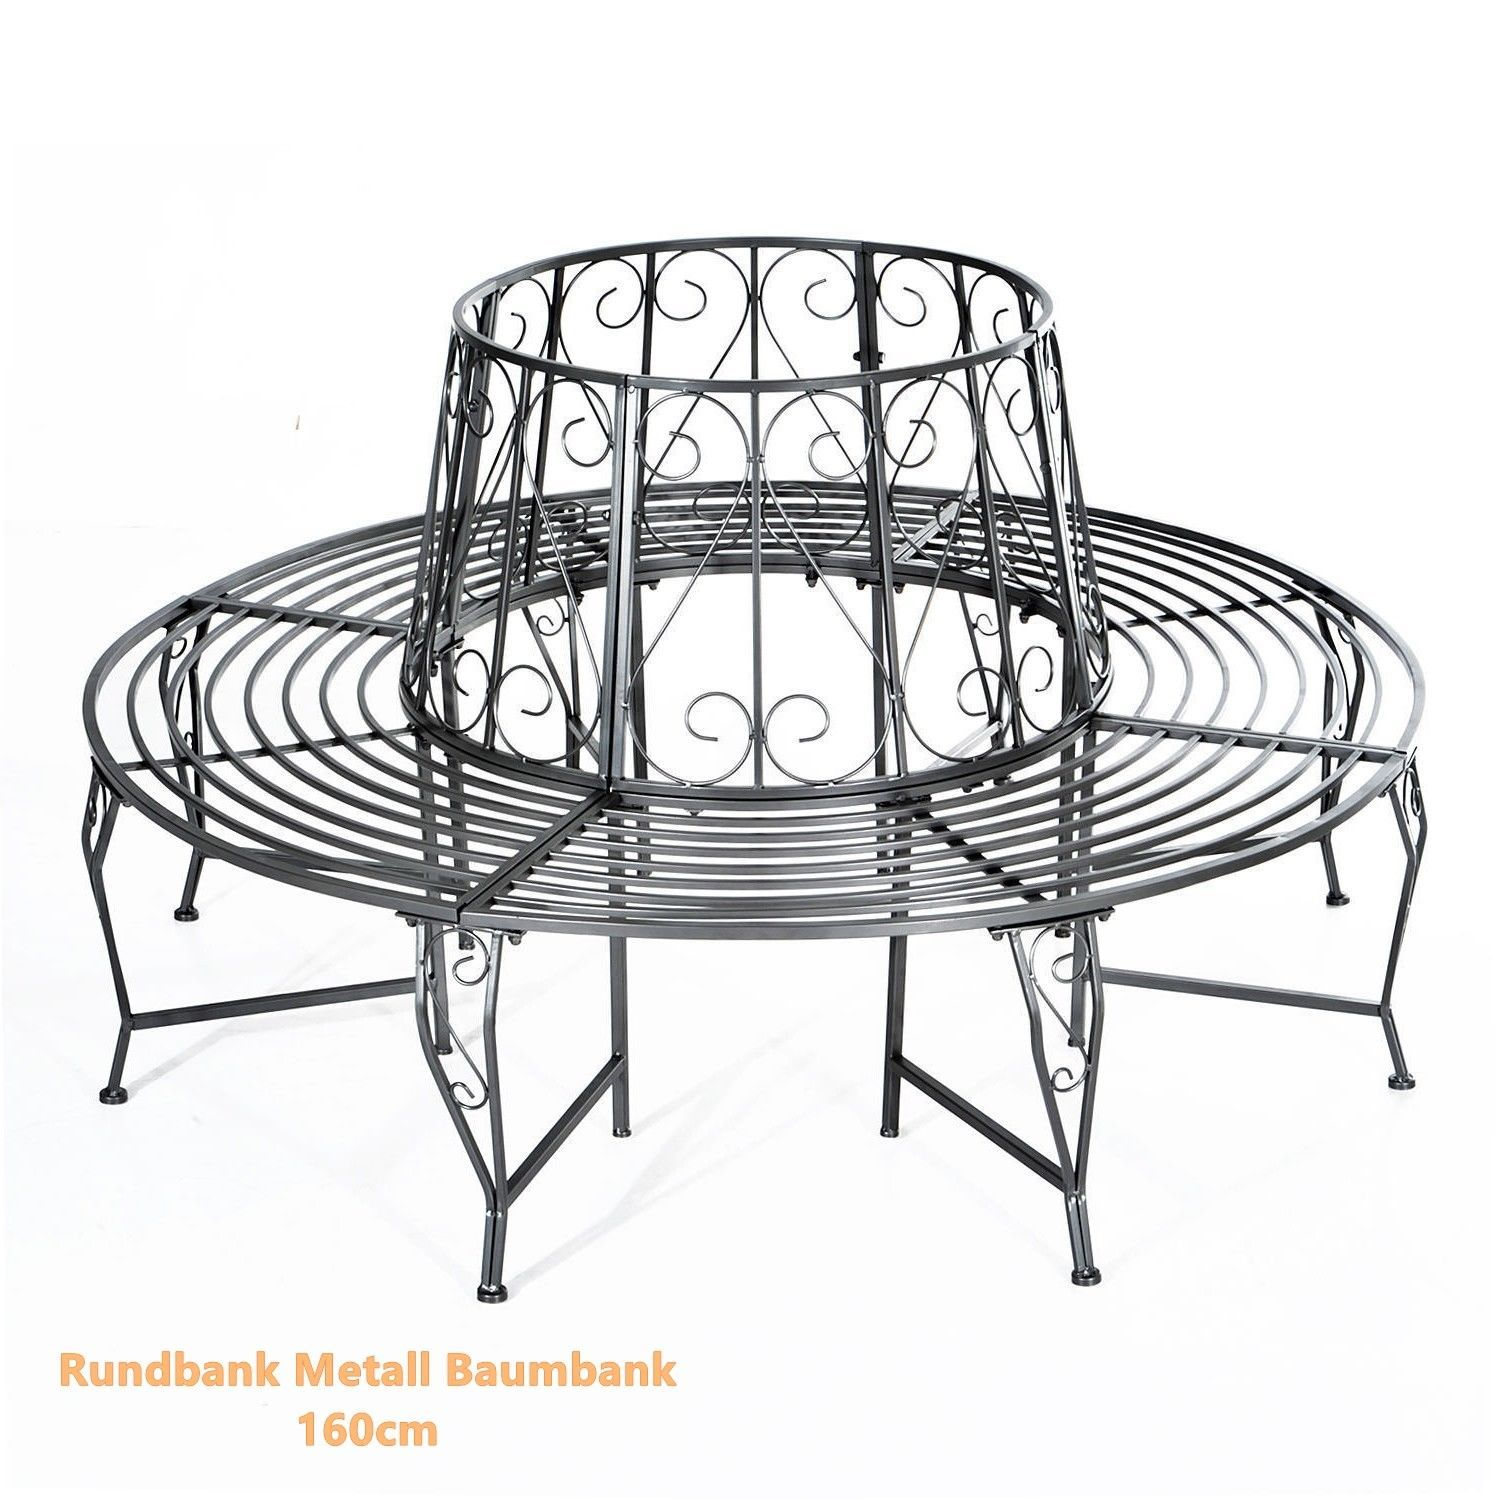 Rundbank Metall Rundbank Metall Baumbank Sitzbank Gartenbank And 50 Similar Items